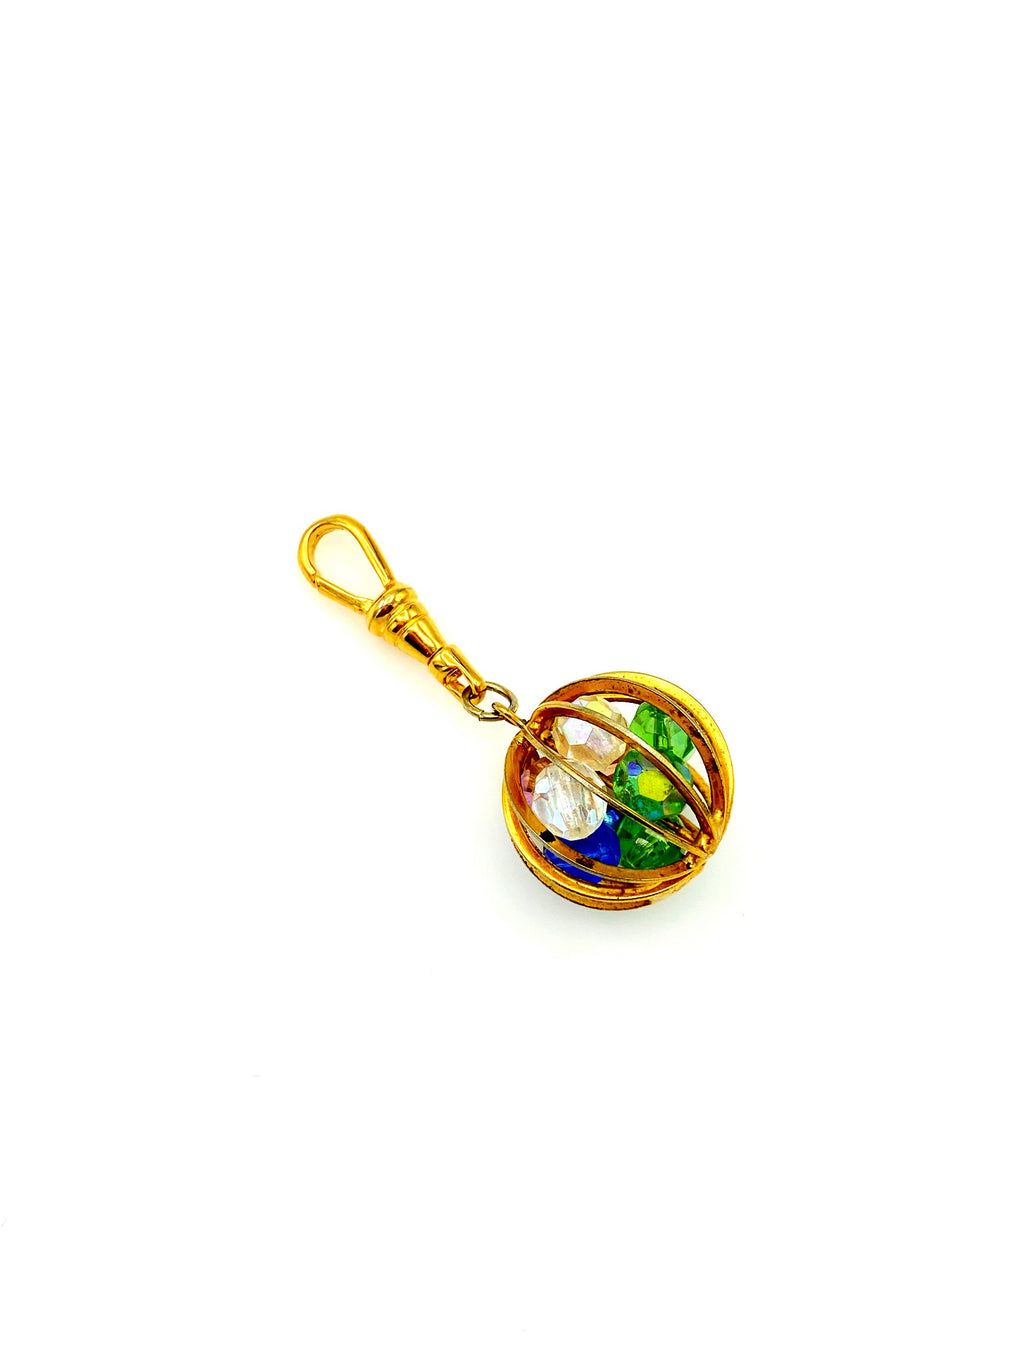 Caged Rainbow Beads Globe Vintage Charm Swivel Fob Jewelry